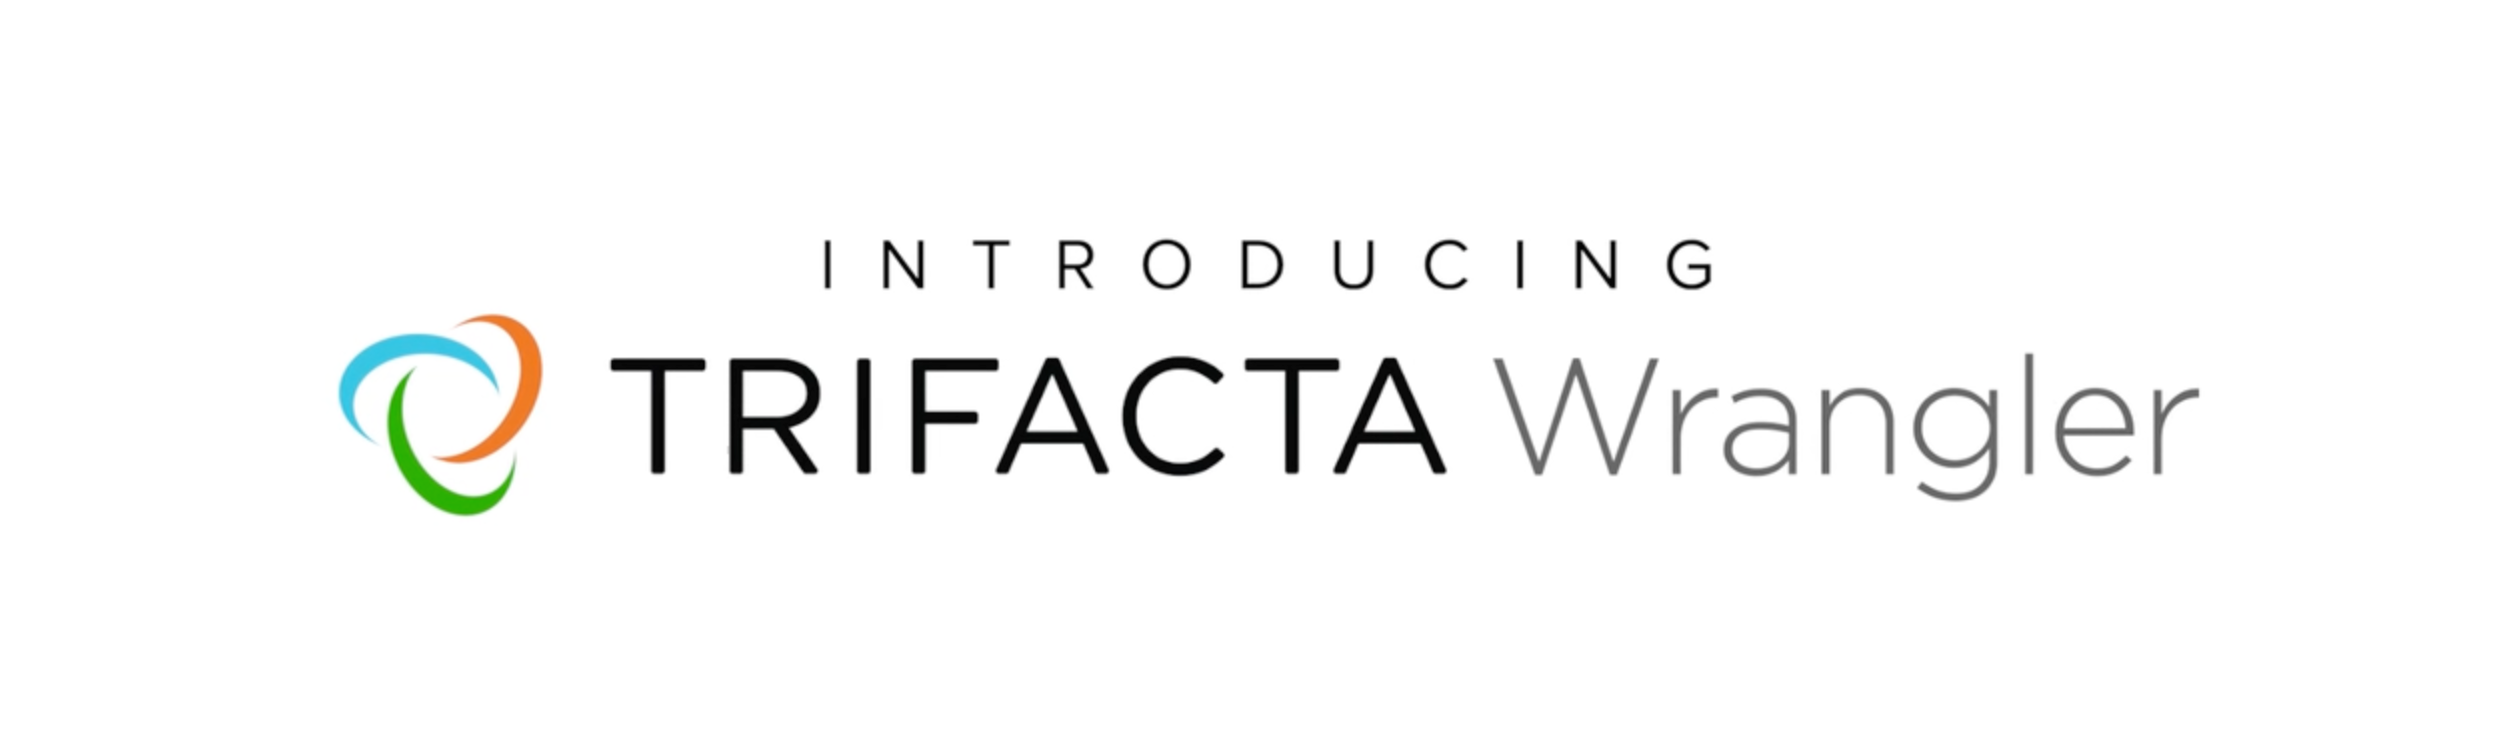 Introducing Trifacta Wrangler_2